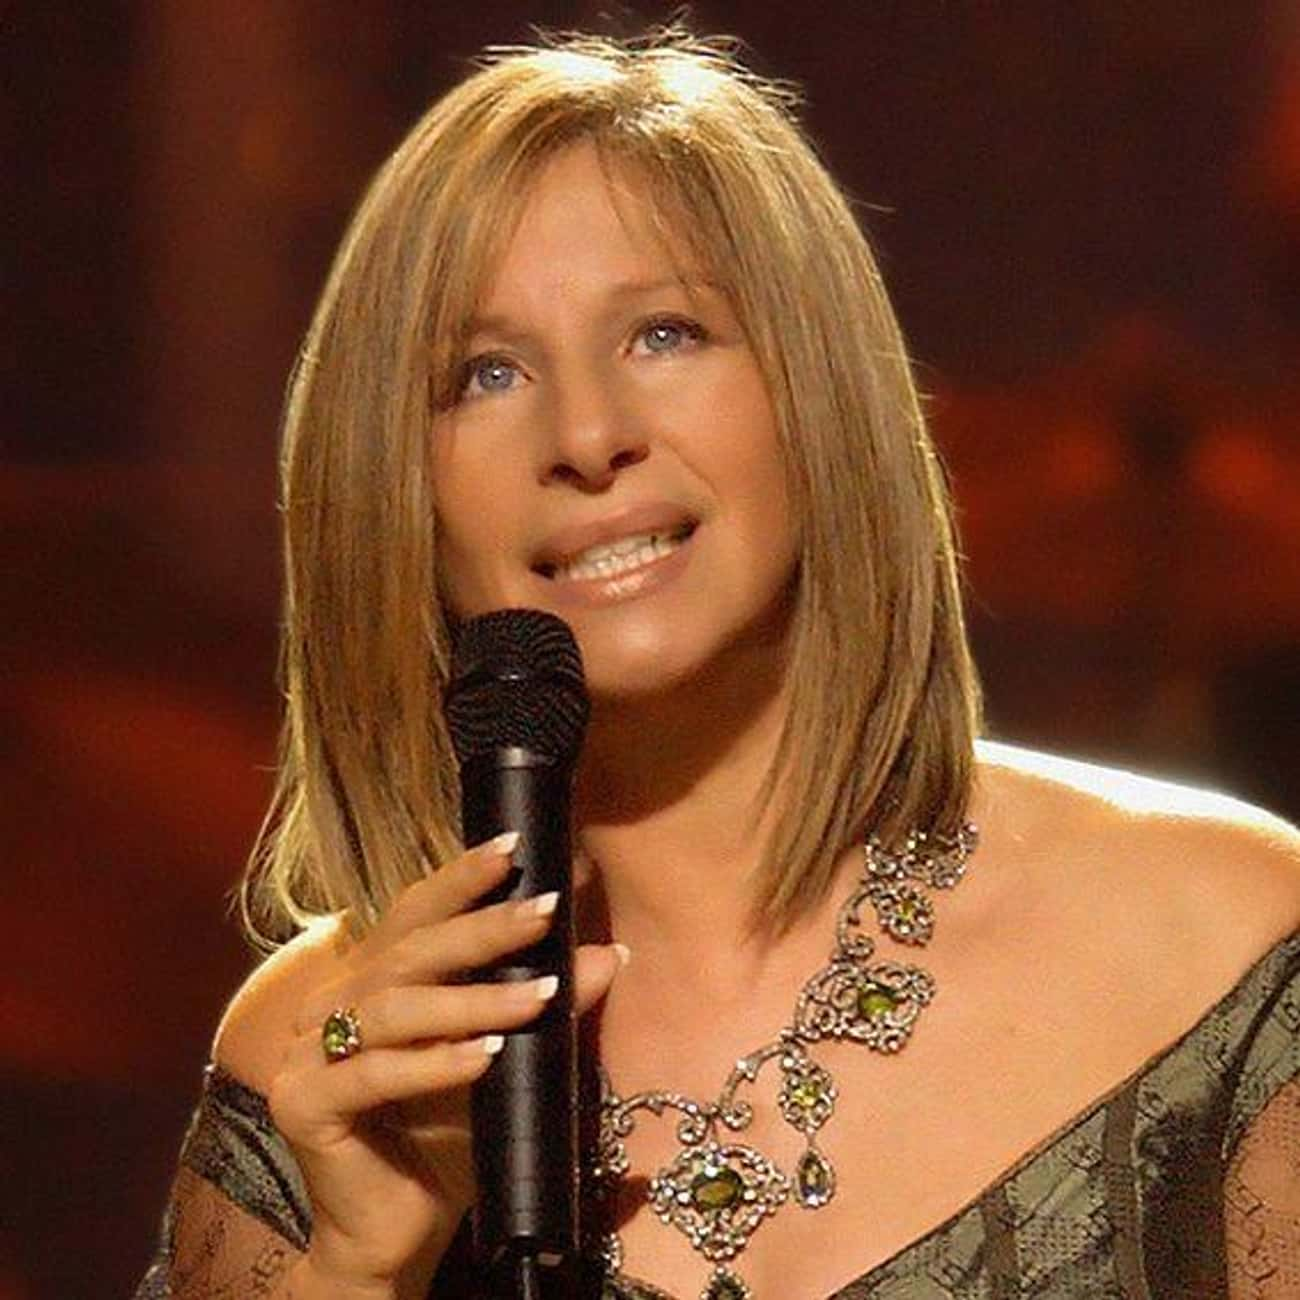 Barbra Streisand is listed (or ranked) 1 on the list Famous People Born in 1942